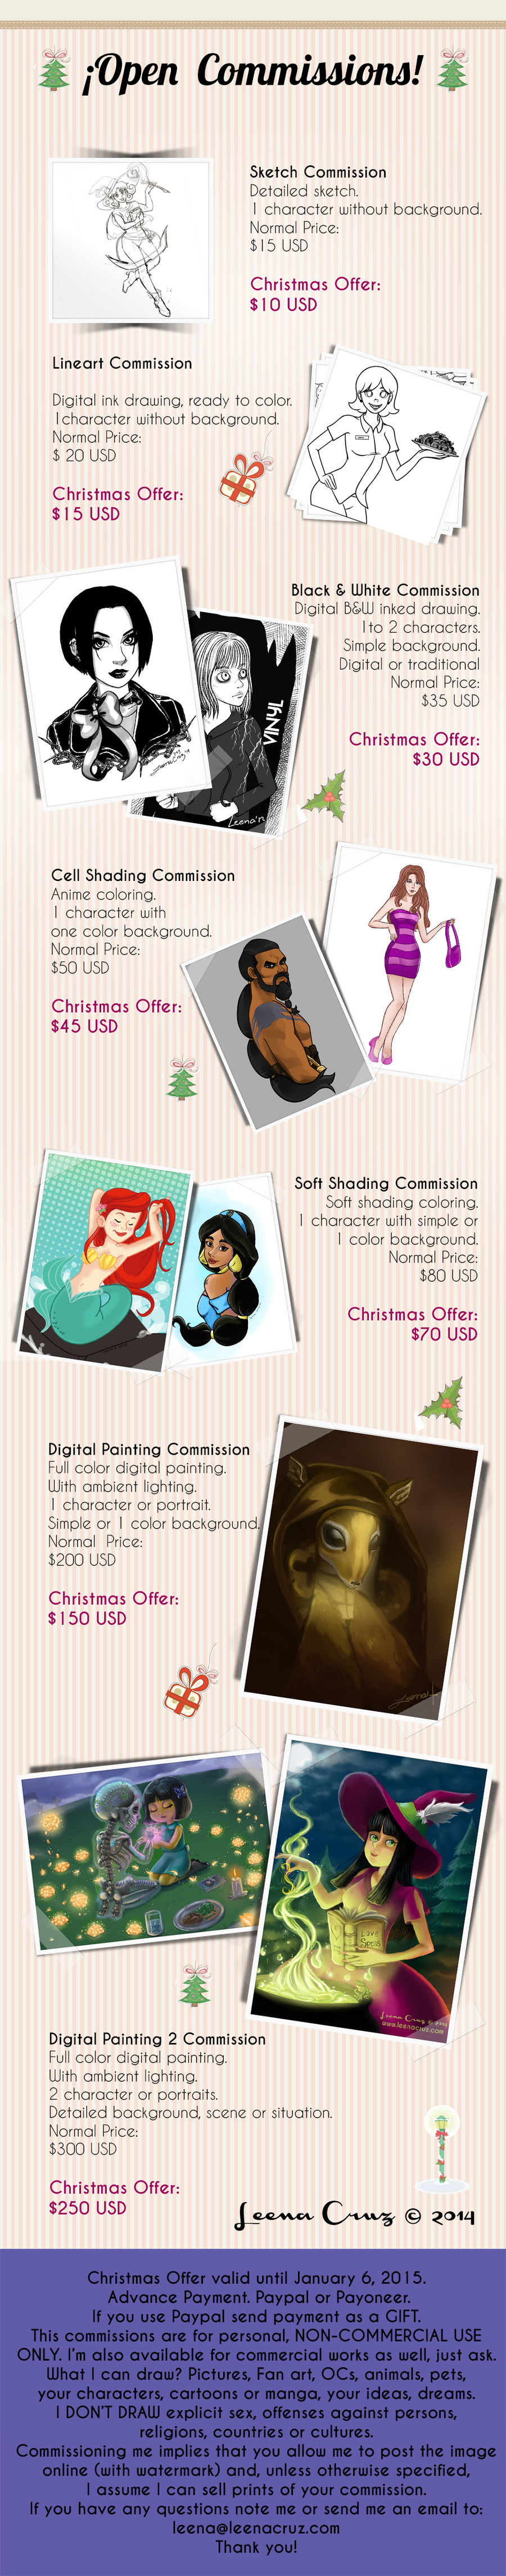 OPEN COMMISSIONS - Take advantage of the Holidays! by LeenaCruz